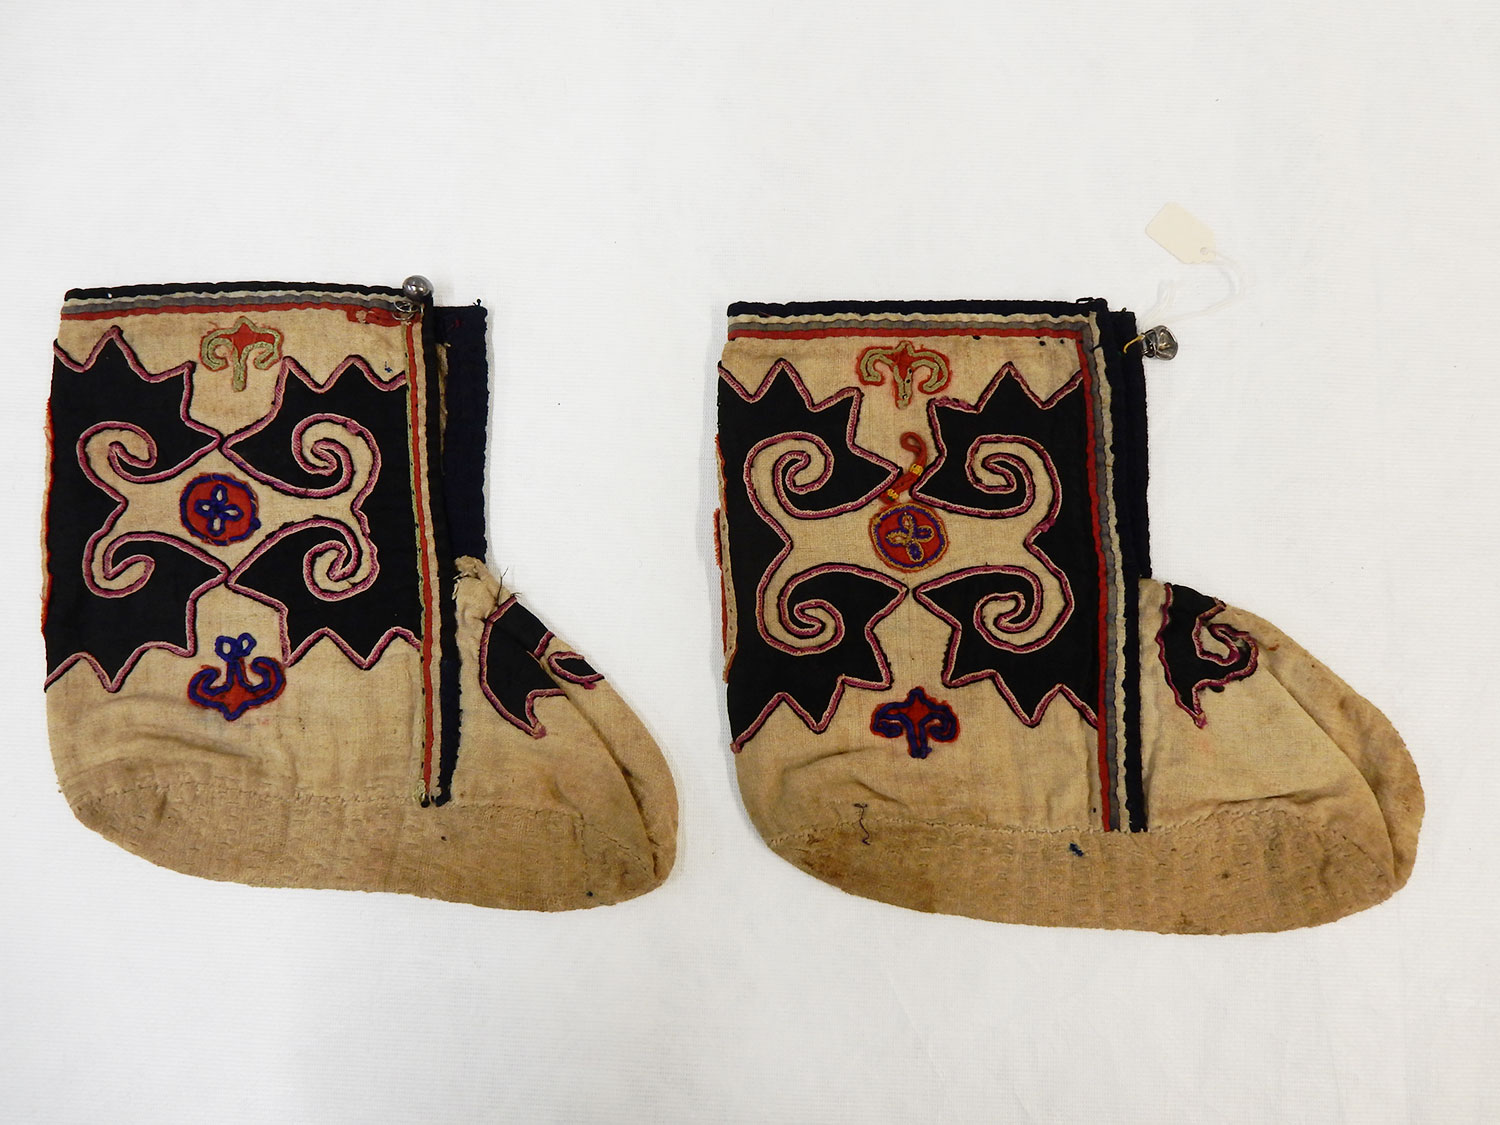 pair of unbleached white cotton boots, with applique decoration, and metal fastening: North Thailand, Yao people, also known as Mien, mid 20th century. Museum reference A.1988.220. A+B